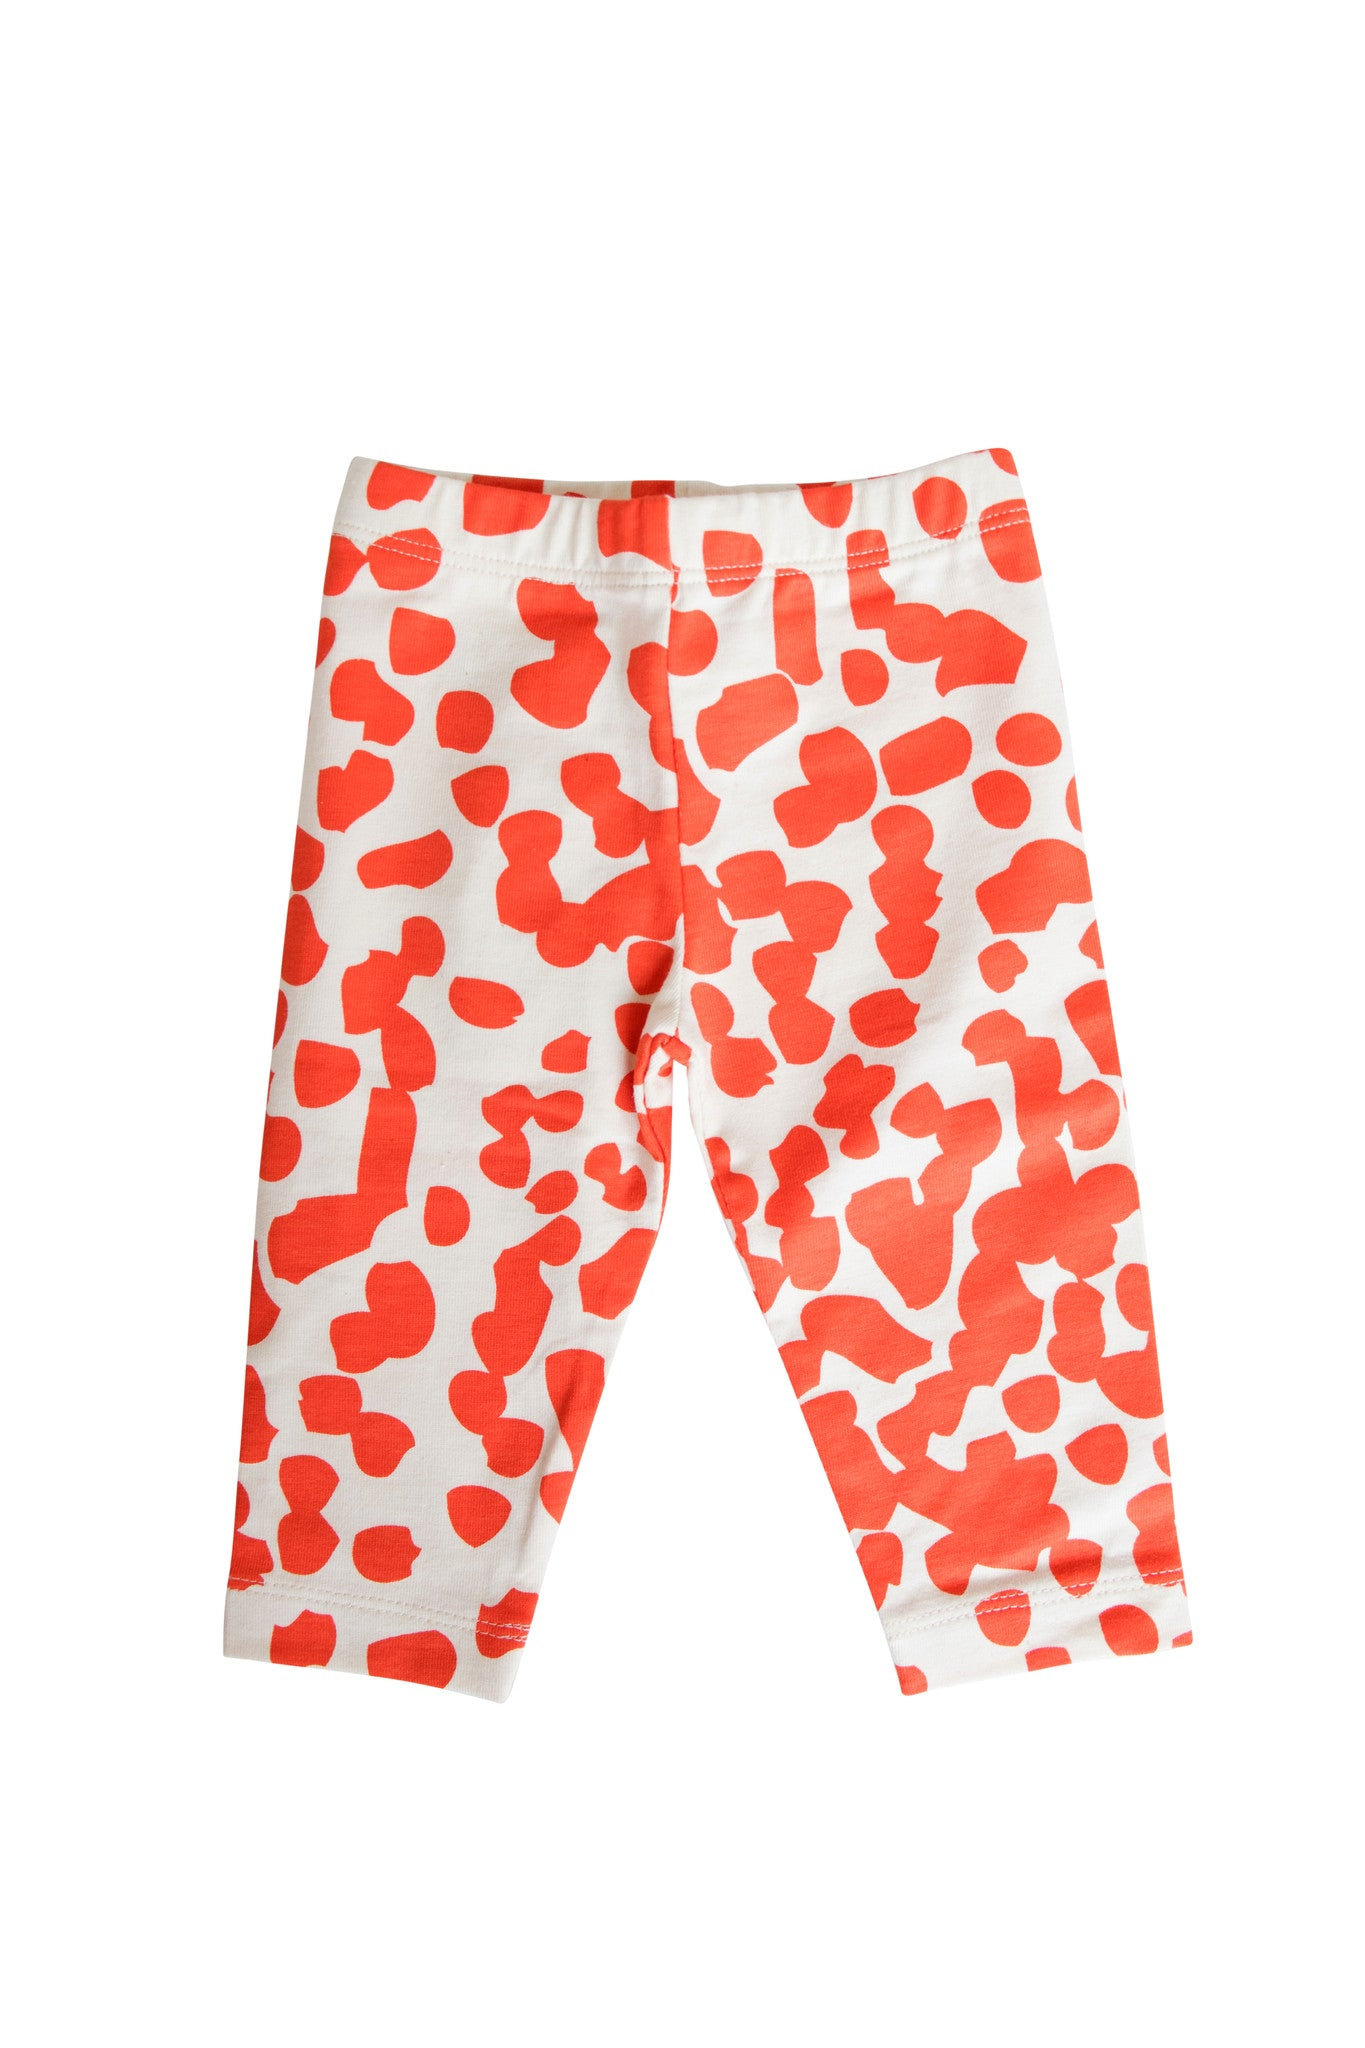 Baby Coral Stains Leggings - Mini Mischief